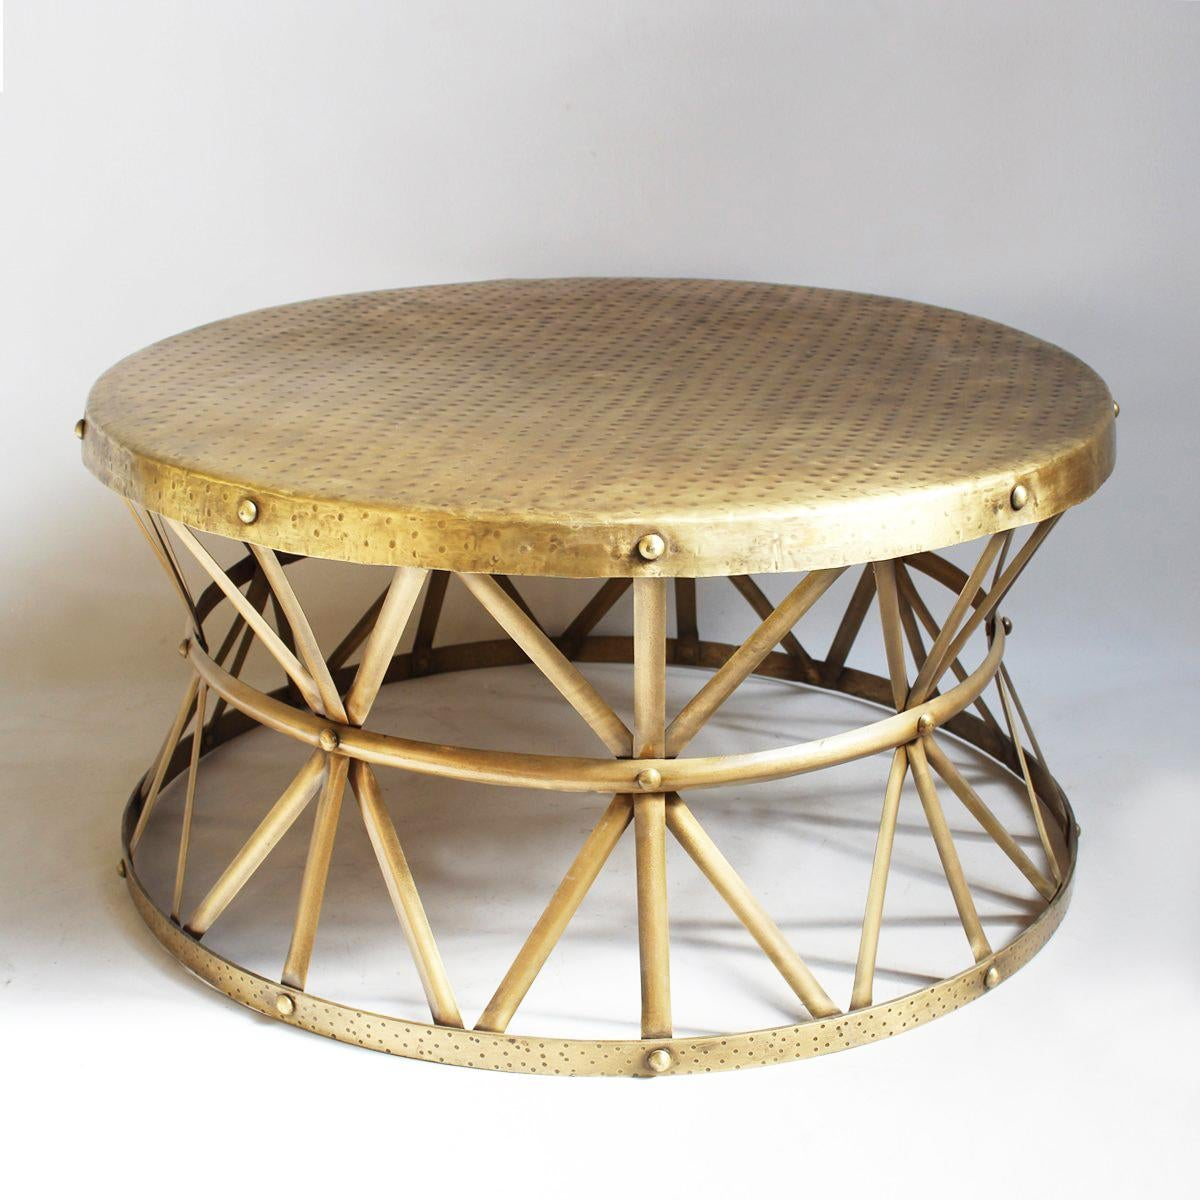 Attractive Modern Hammered Brass Coffee Table   Image 2 Of 4